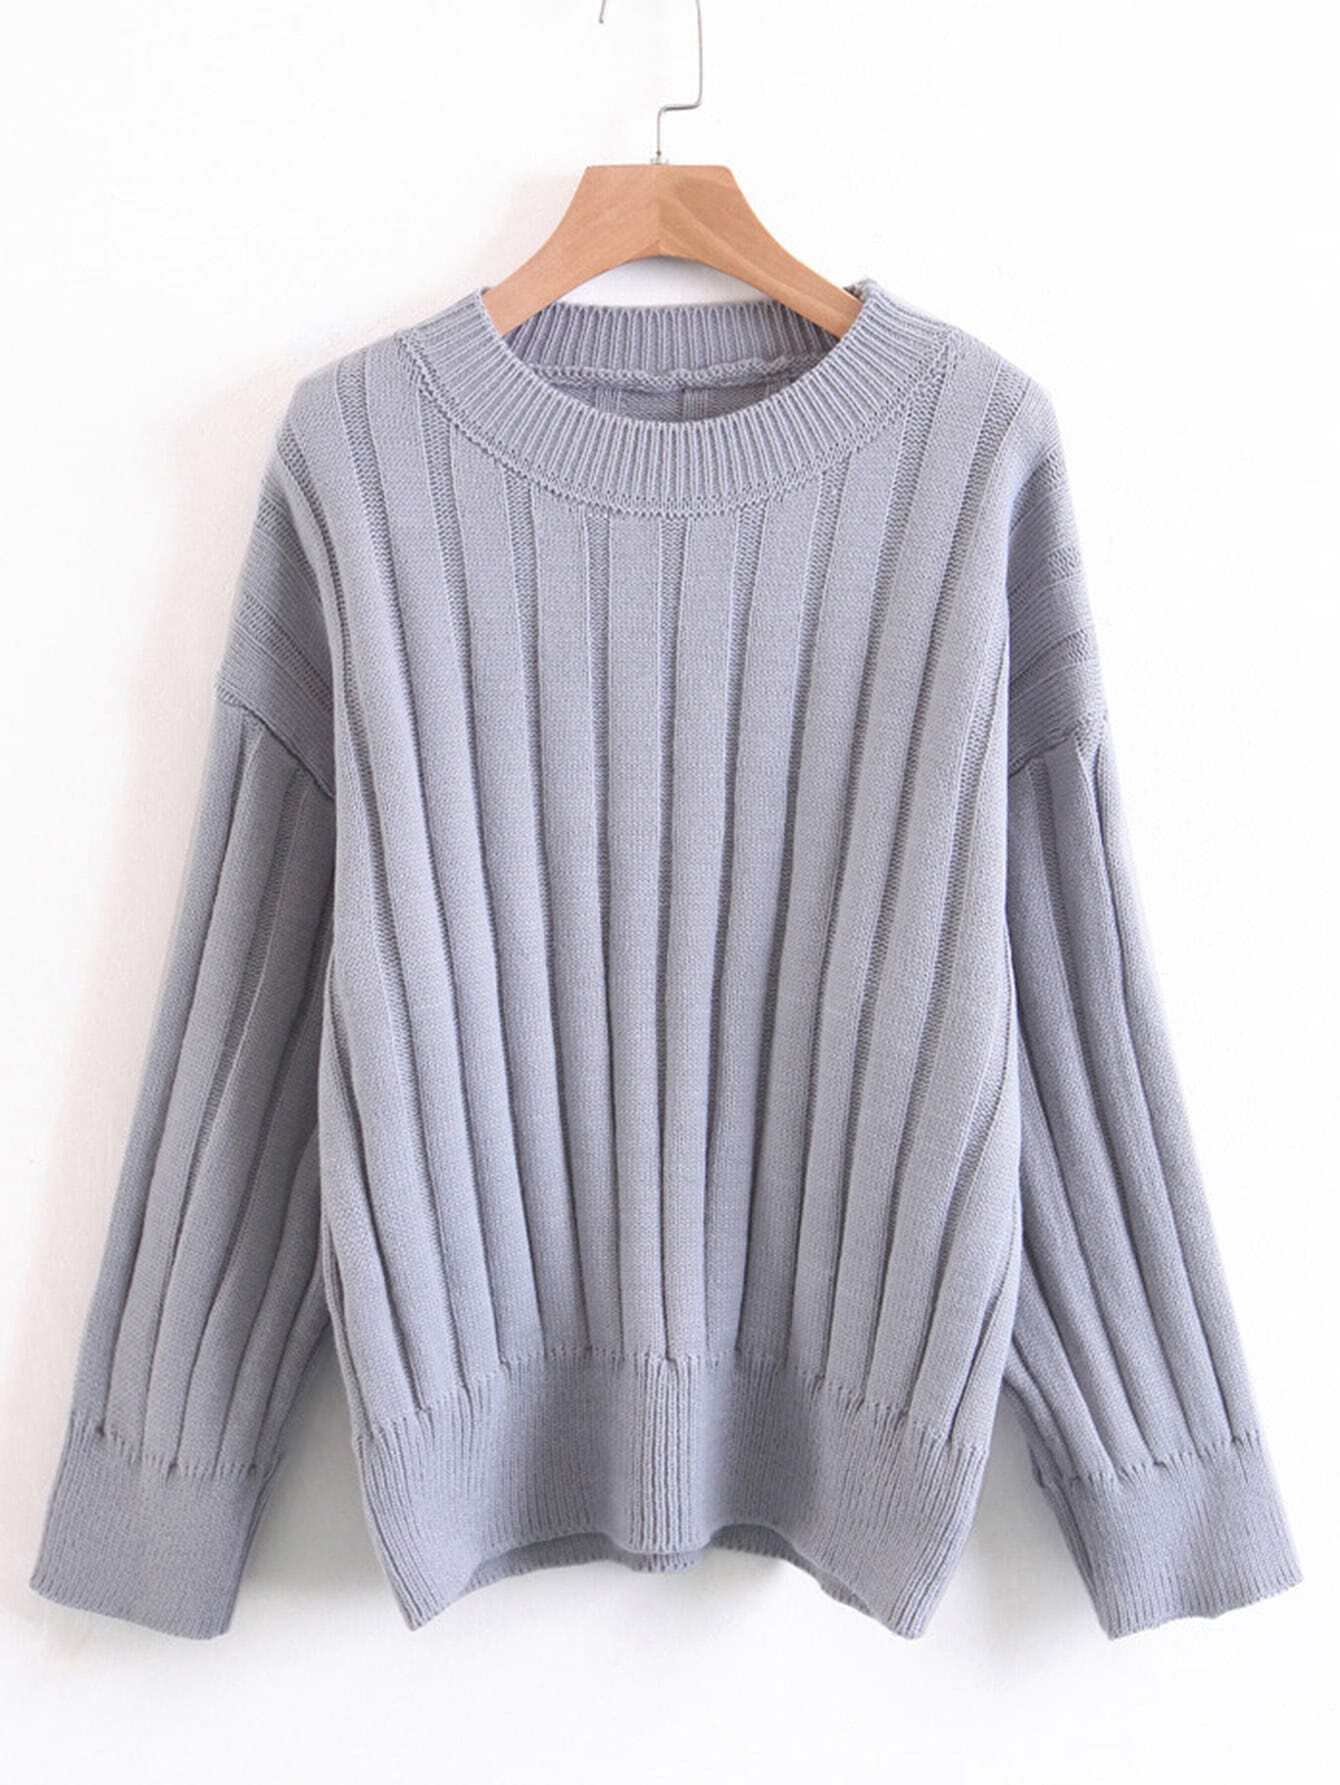 Drop Shoulder Ribbed Knit Sweater sweater170926206